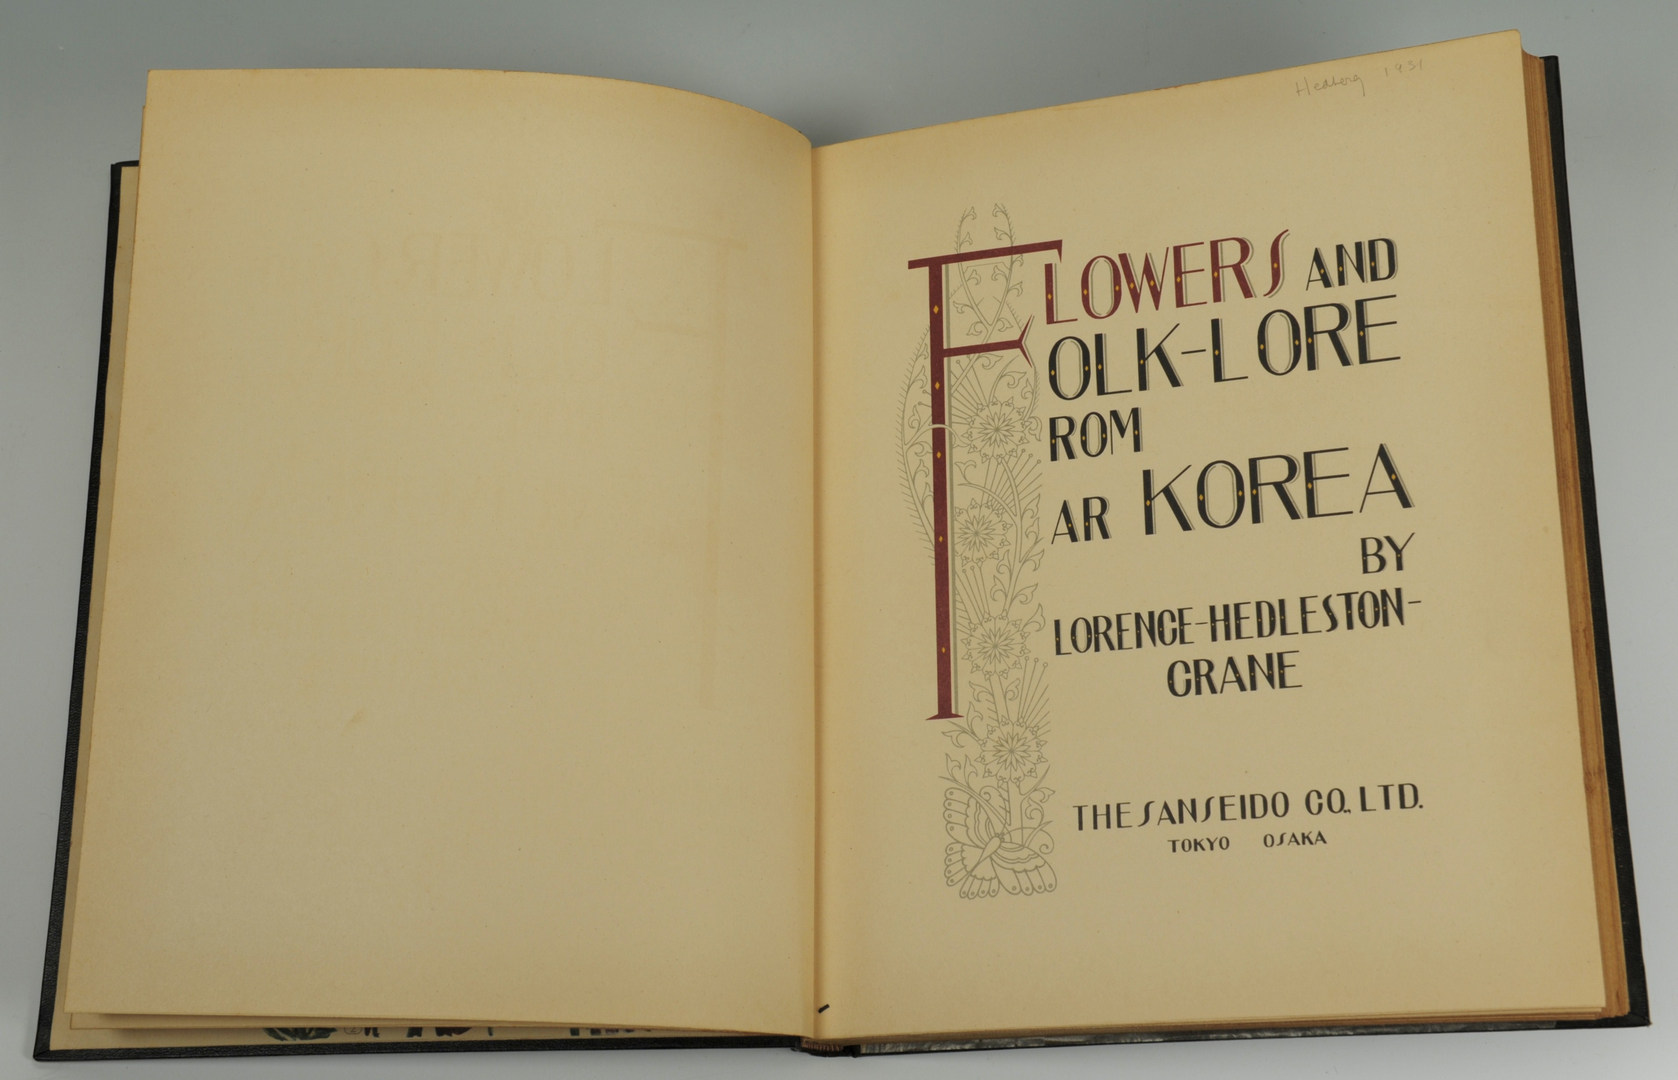 Lot 559: 2 Copies of Flowers & Folklore from Far Korea by